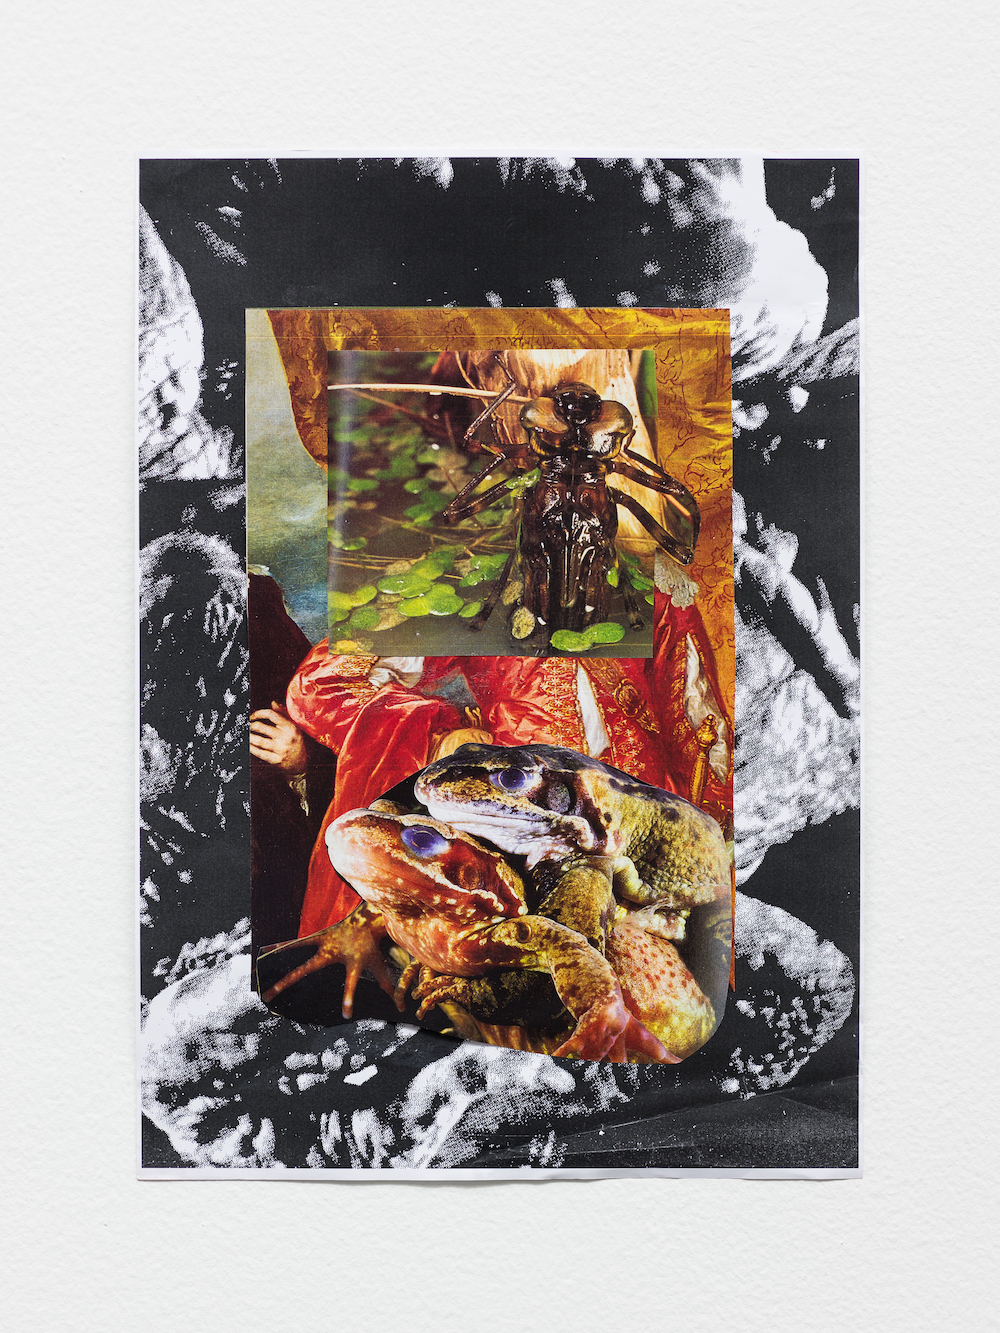 Marvin Gaye Chetwynd, Psychic Collage 11, 2017 with Galerie Gregor Steiger